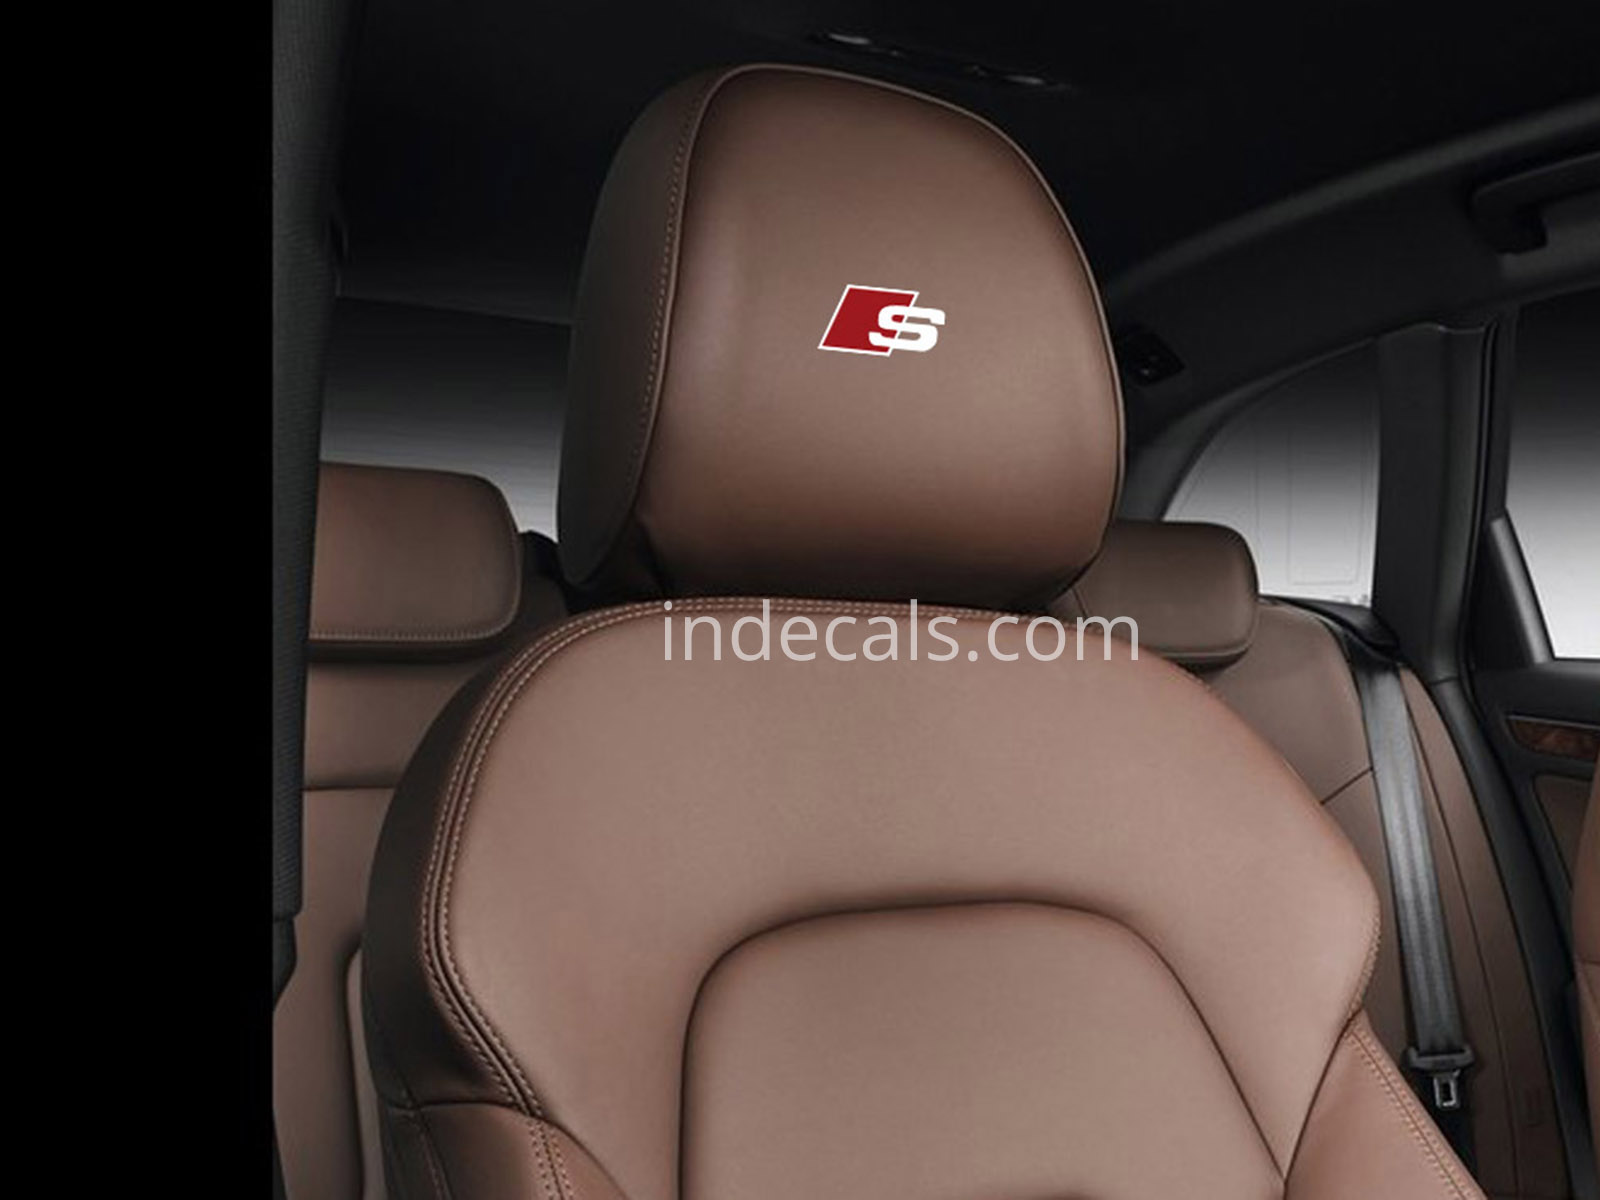 5 x Audi S-Line Stickers for Headrests - White + Red